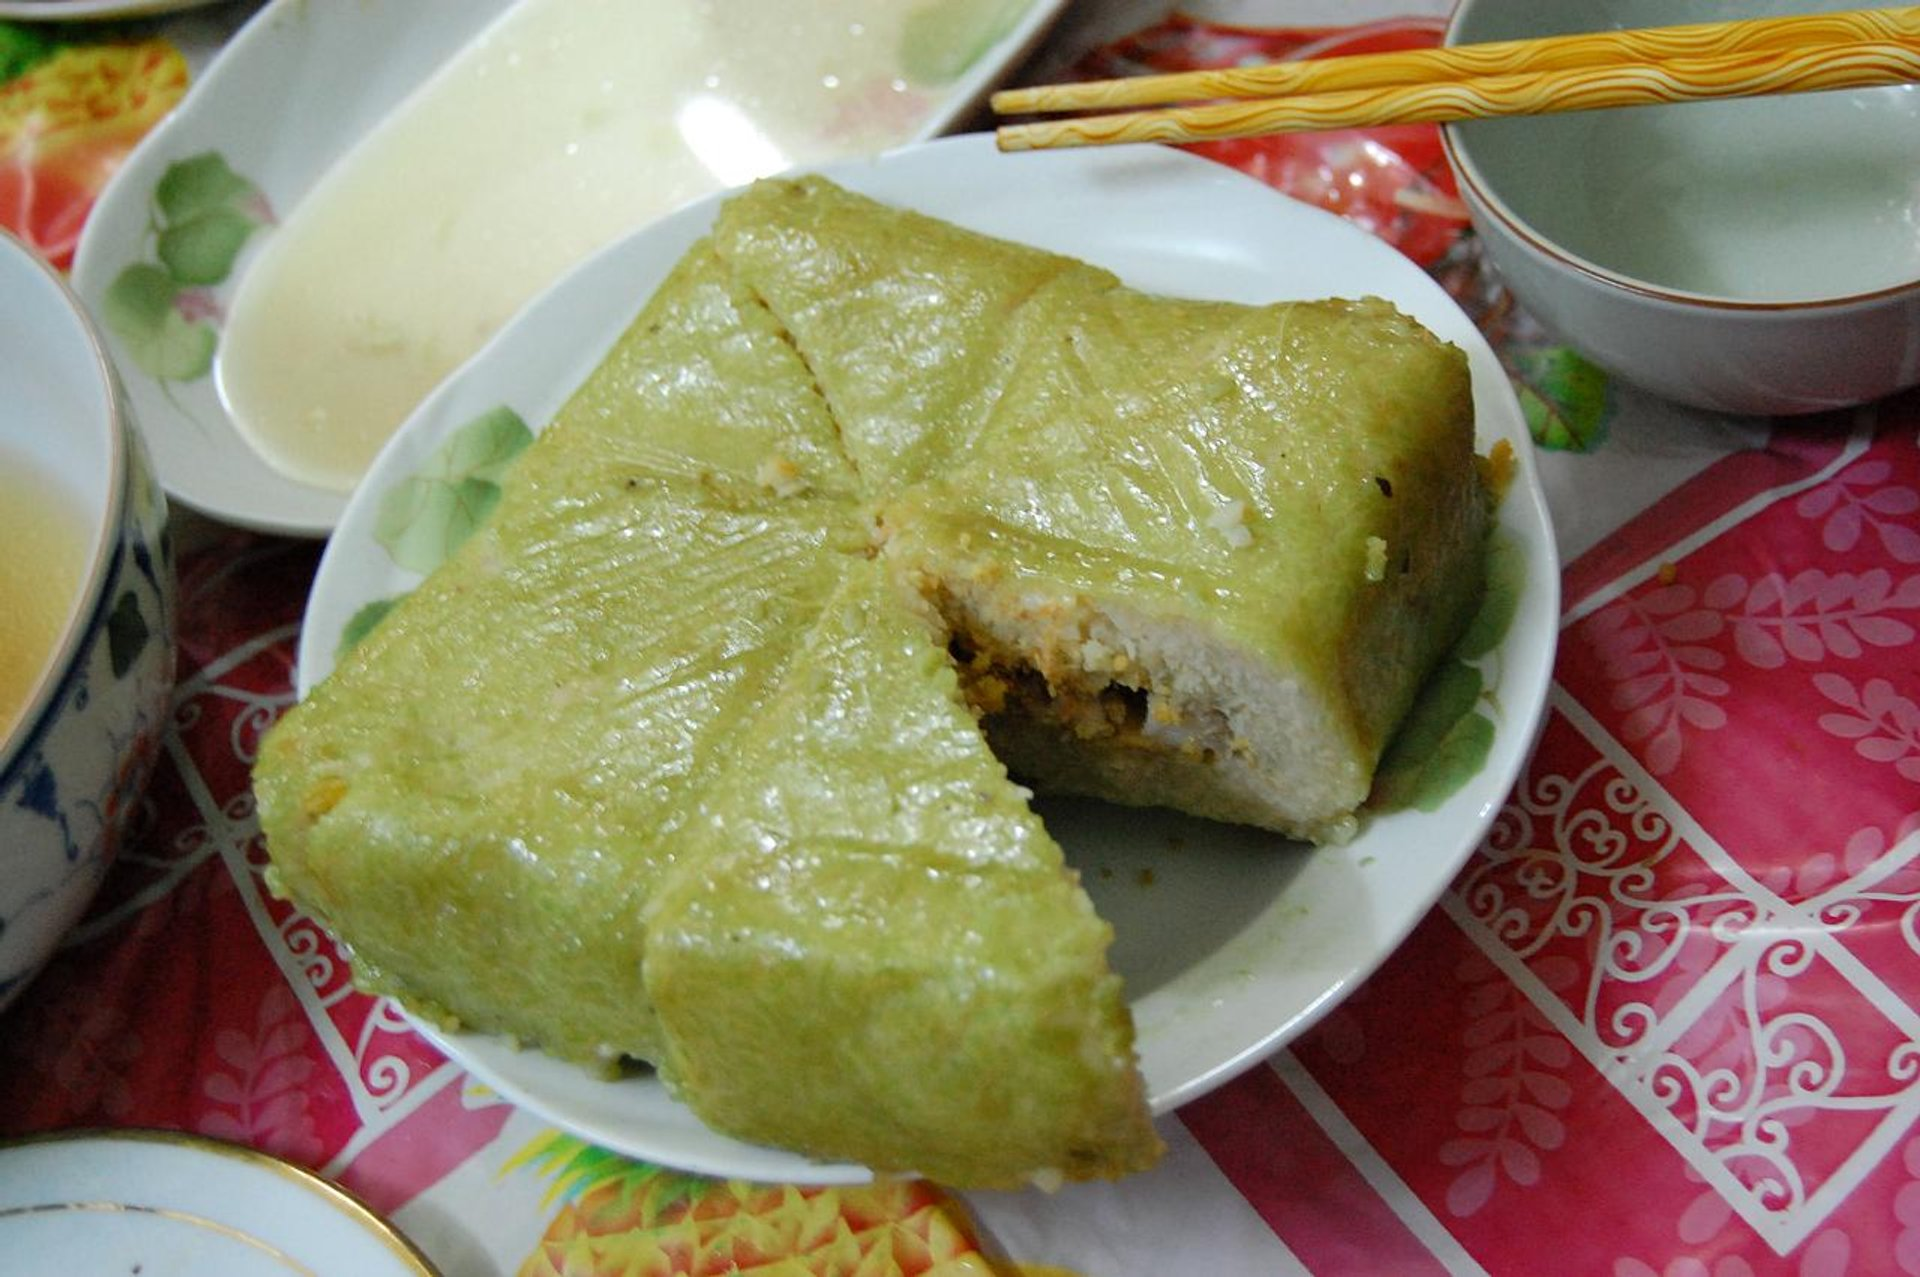 Best time for Banh Chung for Tet in Vietnam 2019